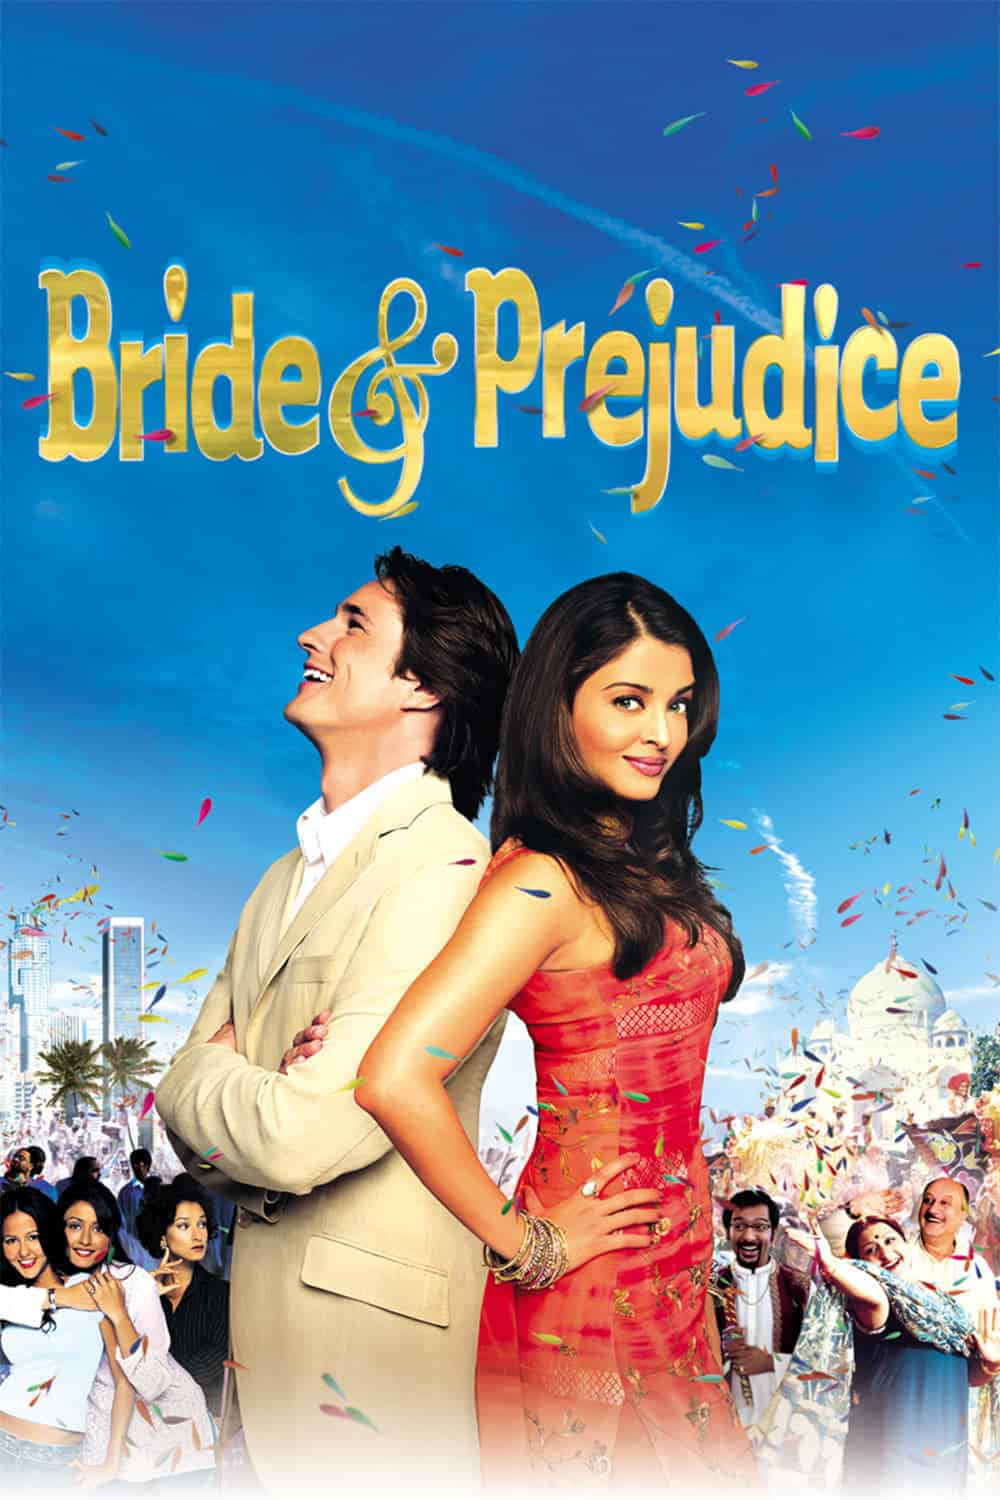 Bride and Prejudice, 2004